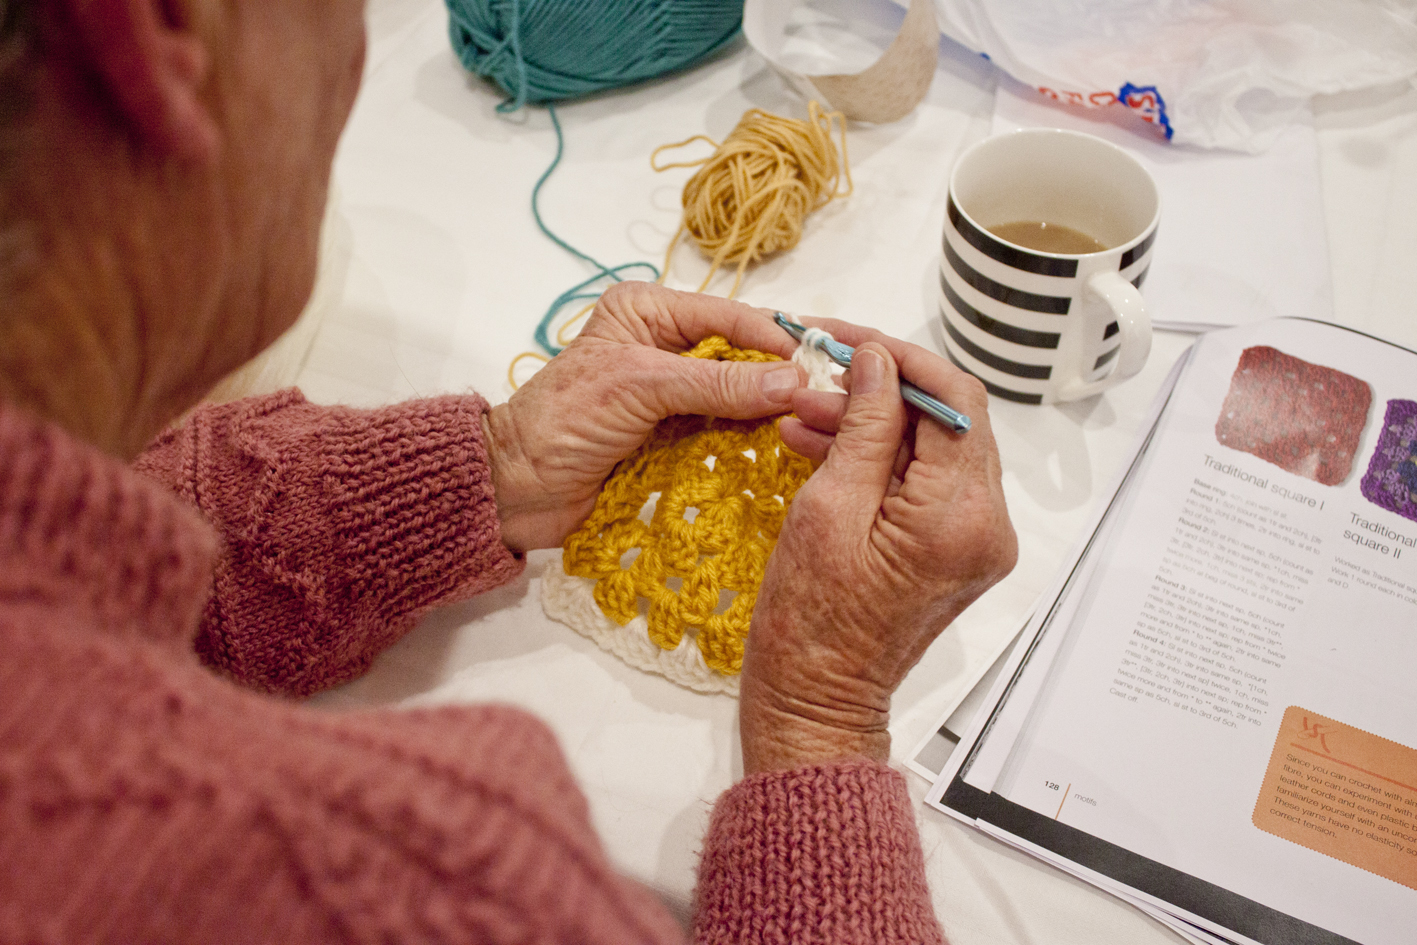 Crochet for beginners workshop - Madeline Young